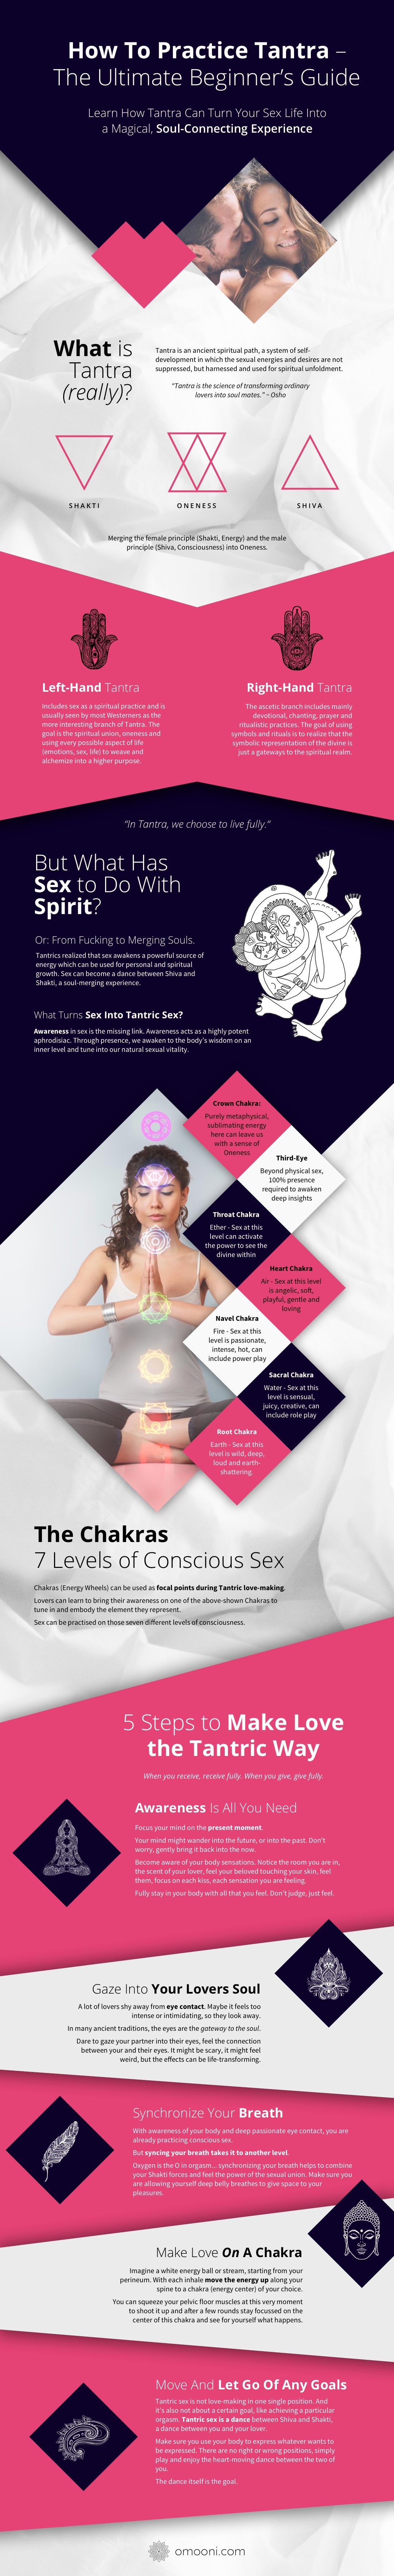 Tantra Beginners Guide